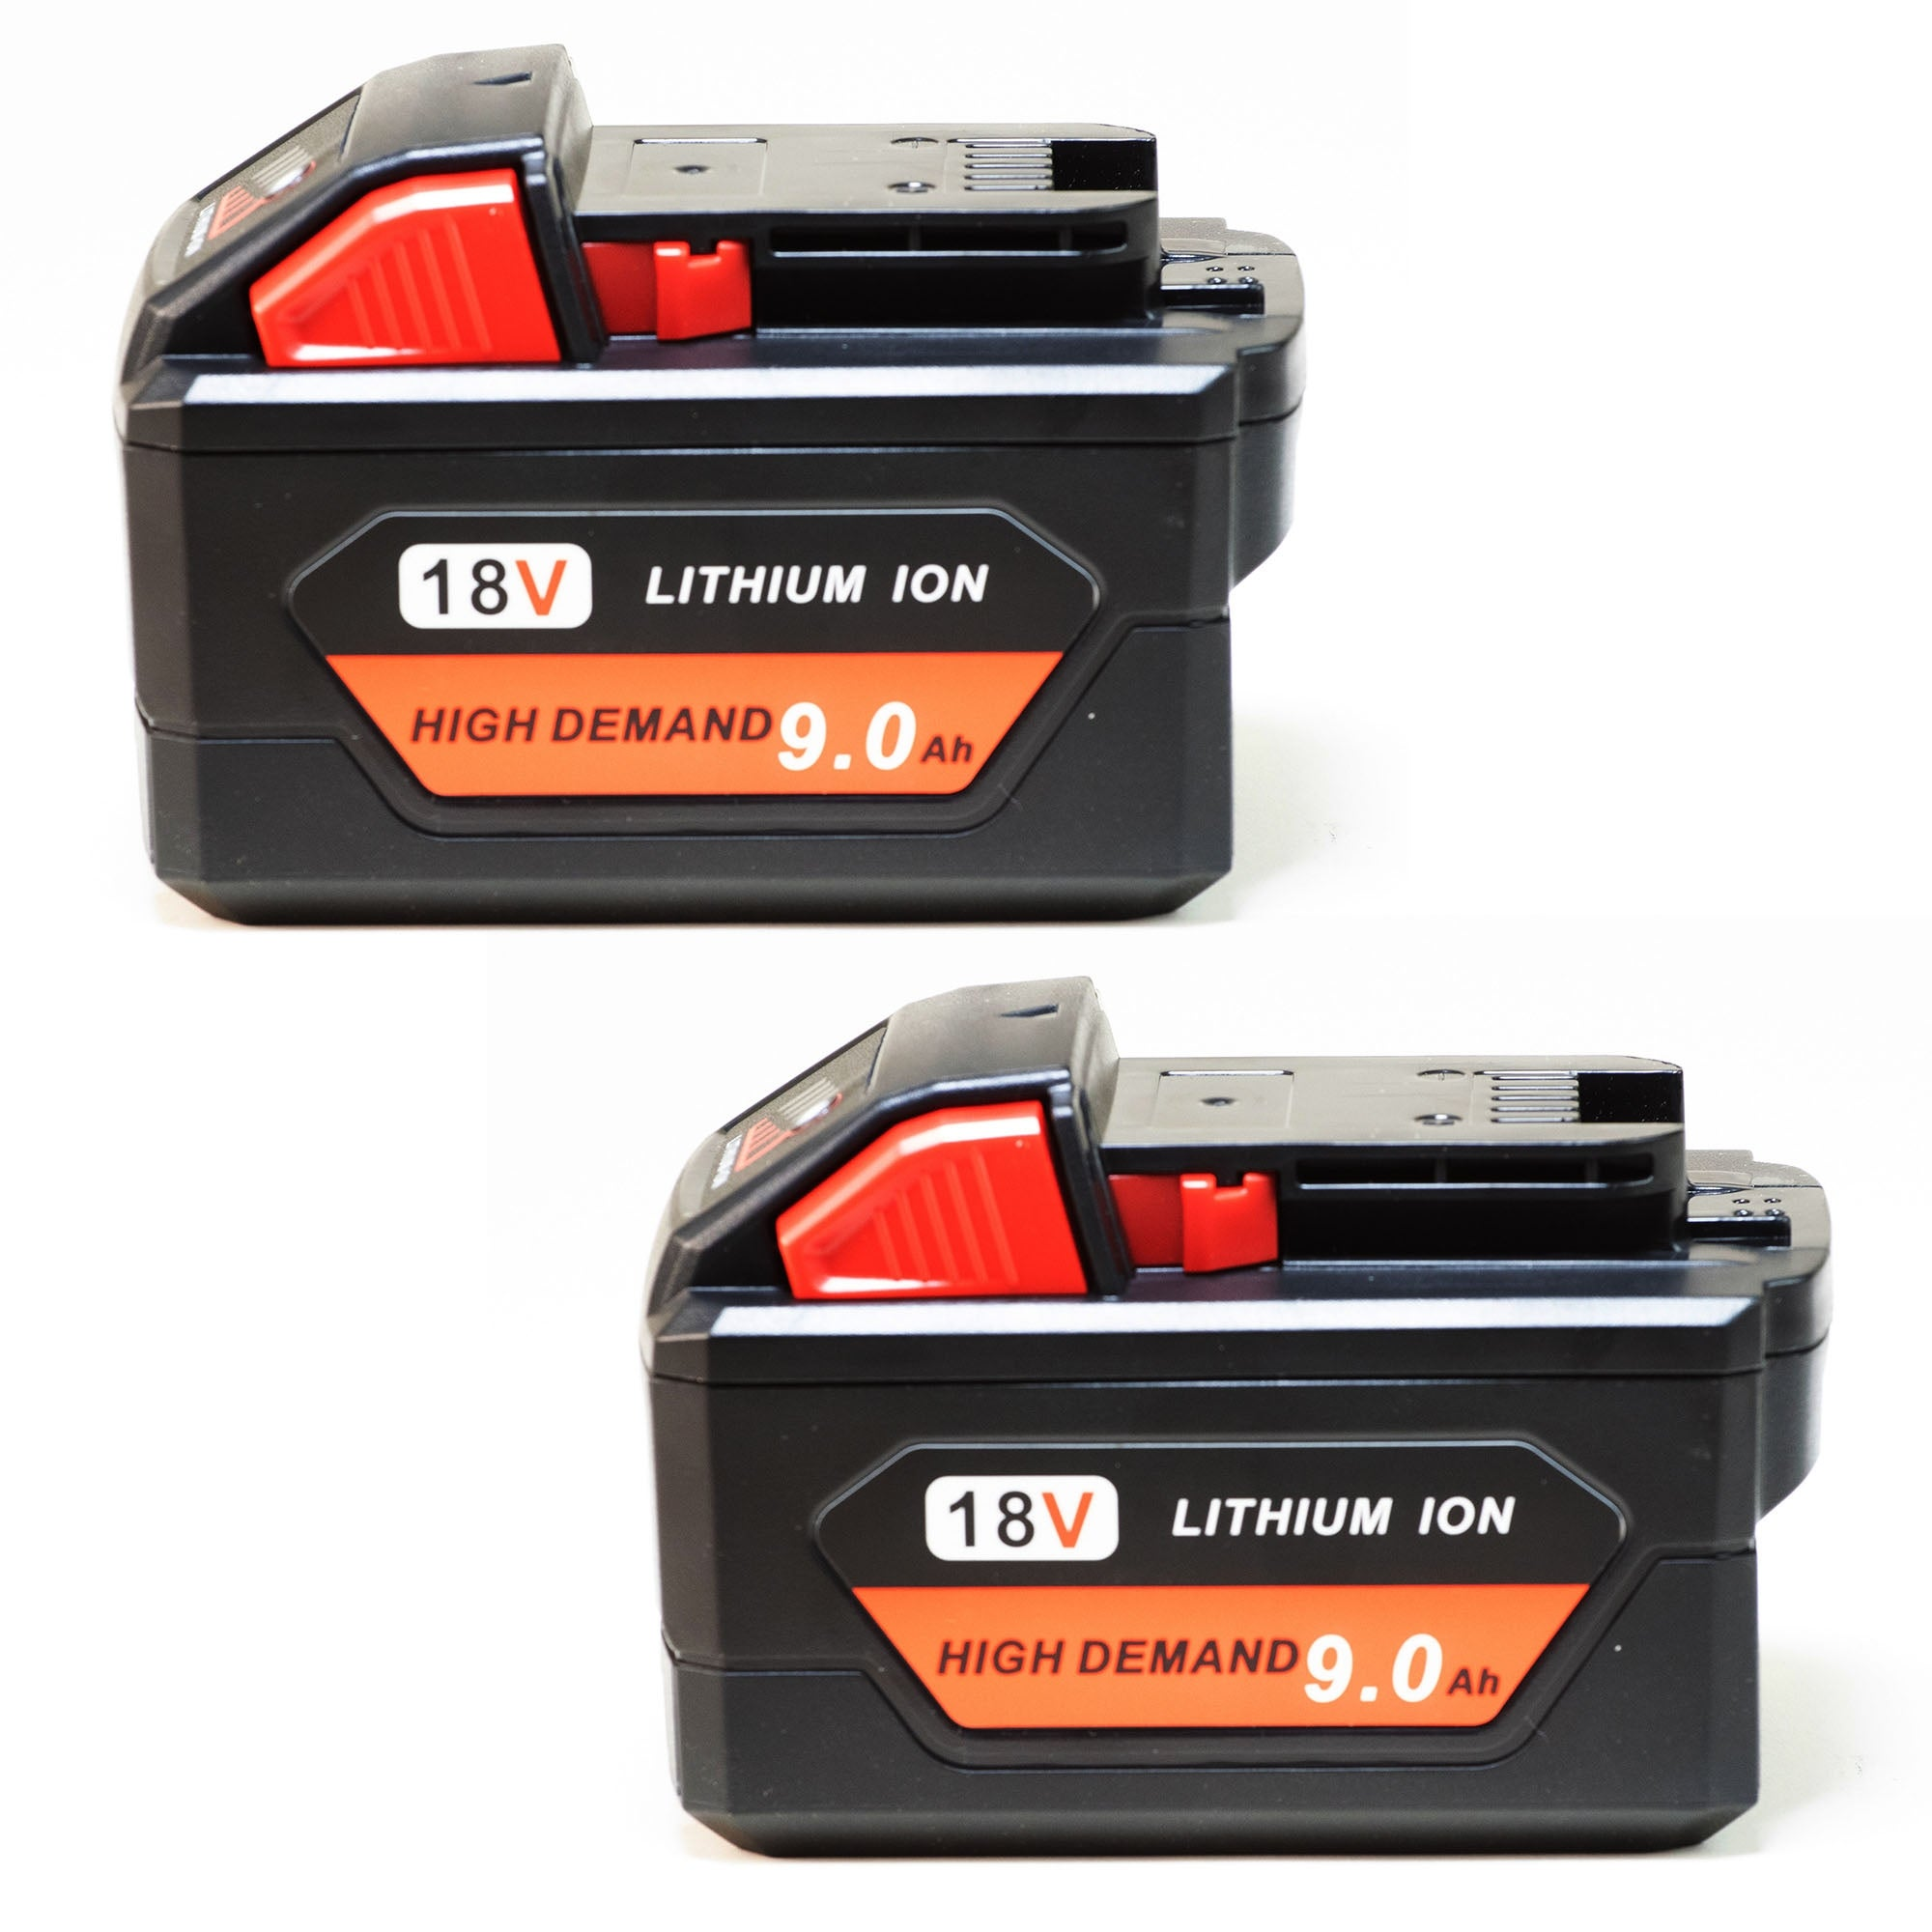 Replacement 9000mAh Battery for Milwaukee 2655B-22 / 2730-22 / 2780-21 Power Tools (2 Pk)